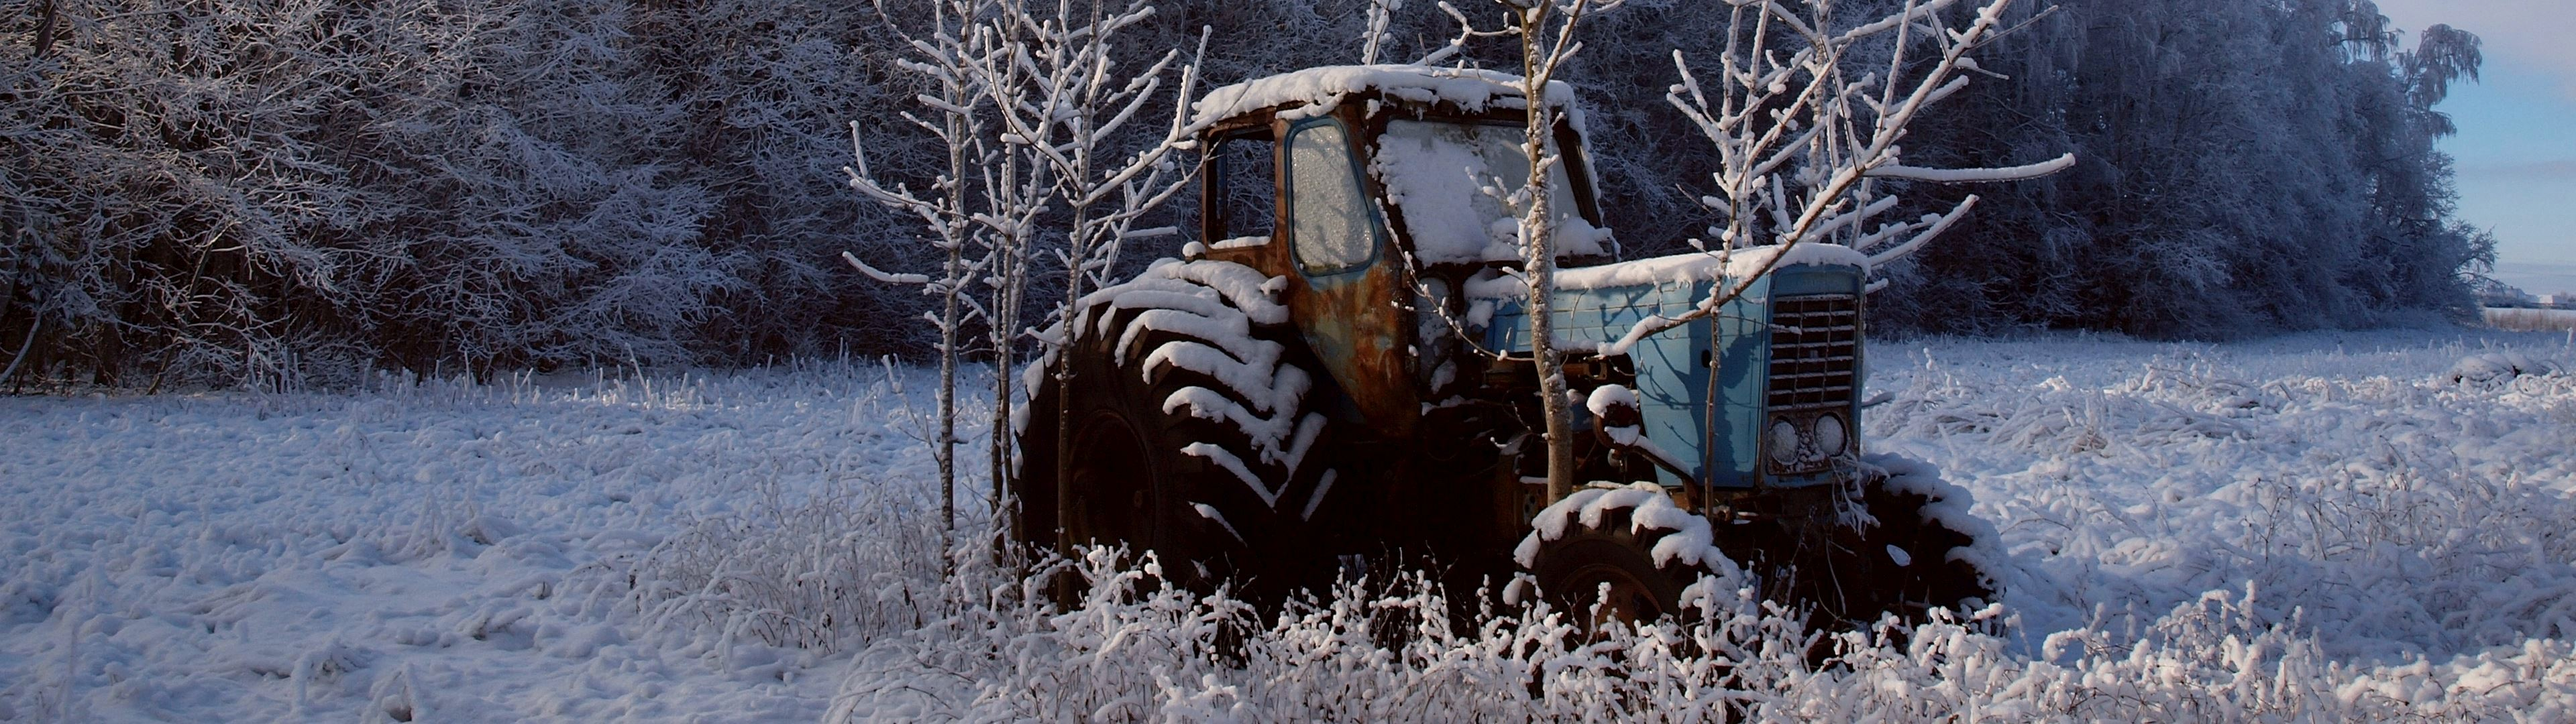 WallpaperFusion-old-tractor-in-the-snow-3840x1080.jpg